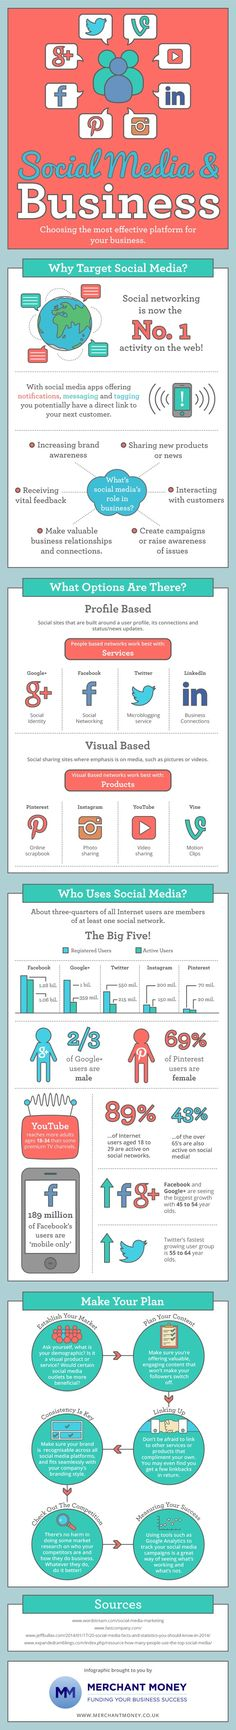 How to Choose The Most Effective Social Media Platform For Your Business #infographic #smm #socialmedia #in